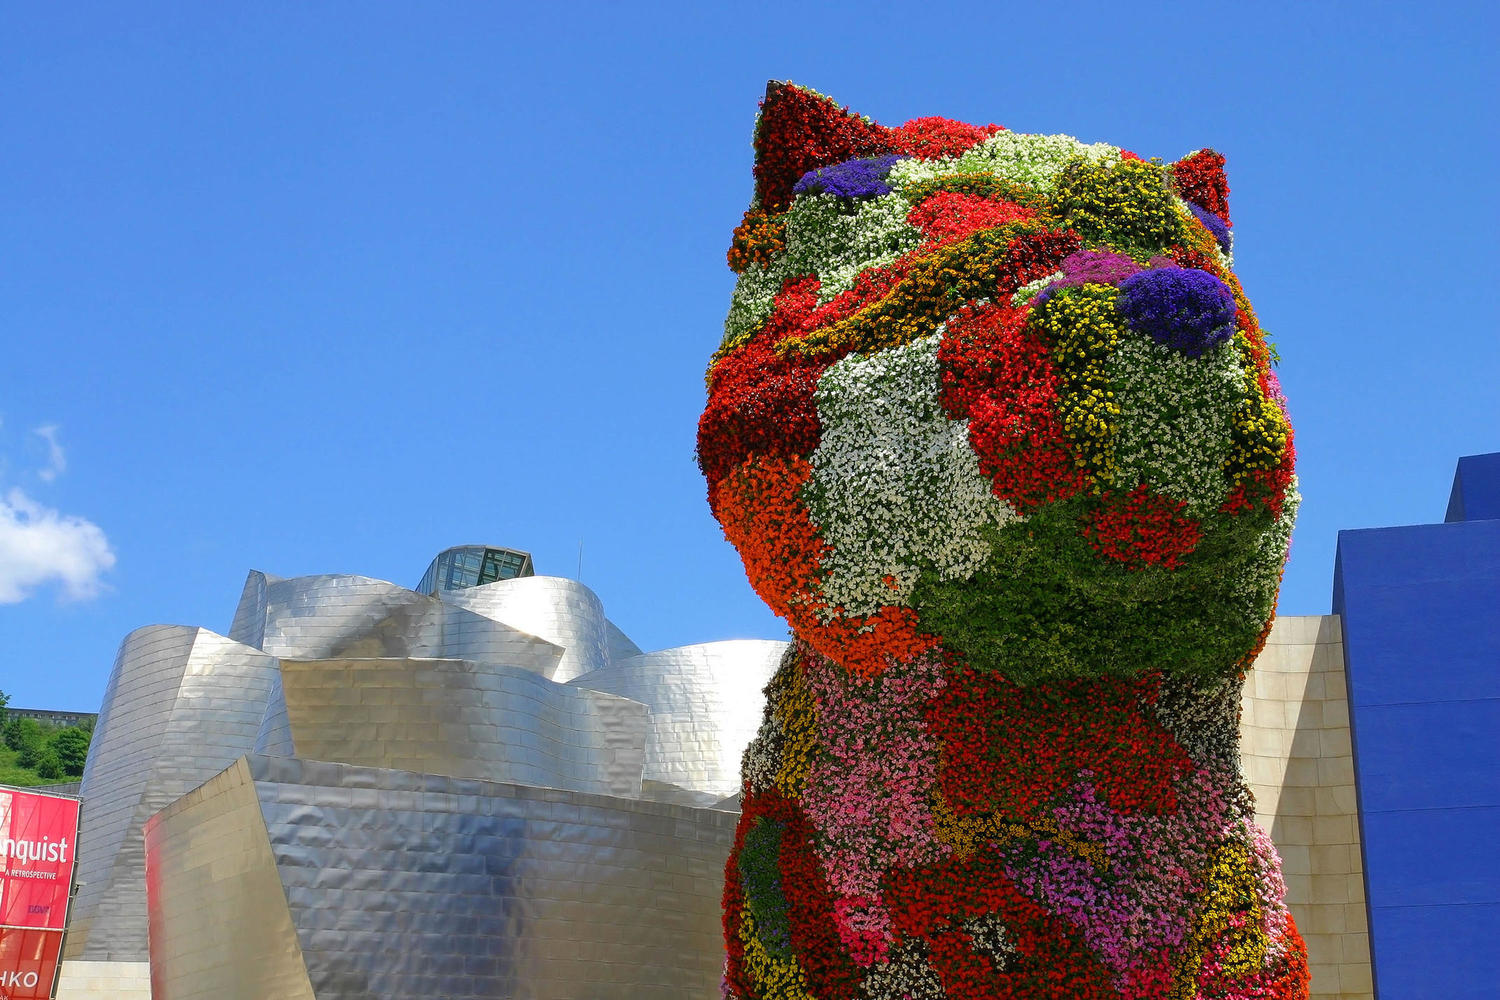 The Guggenheim's endearing flower dog on a sunny day